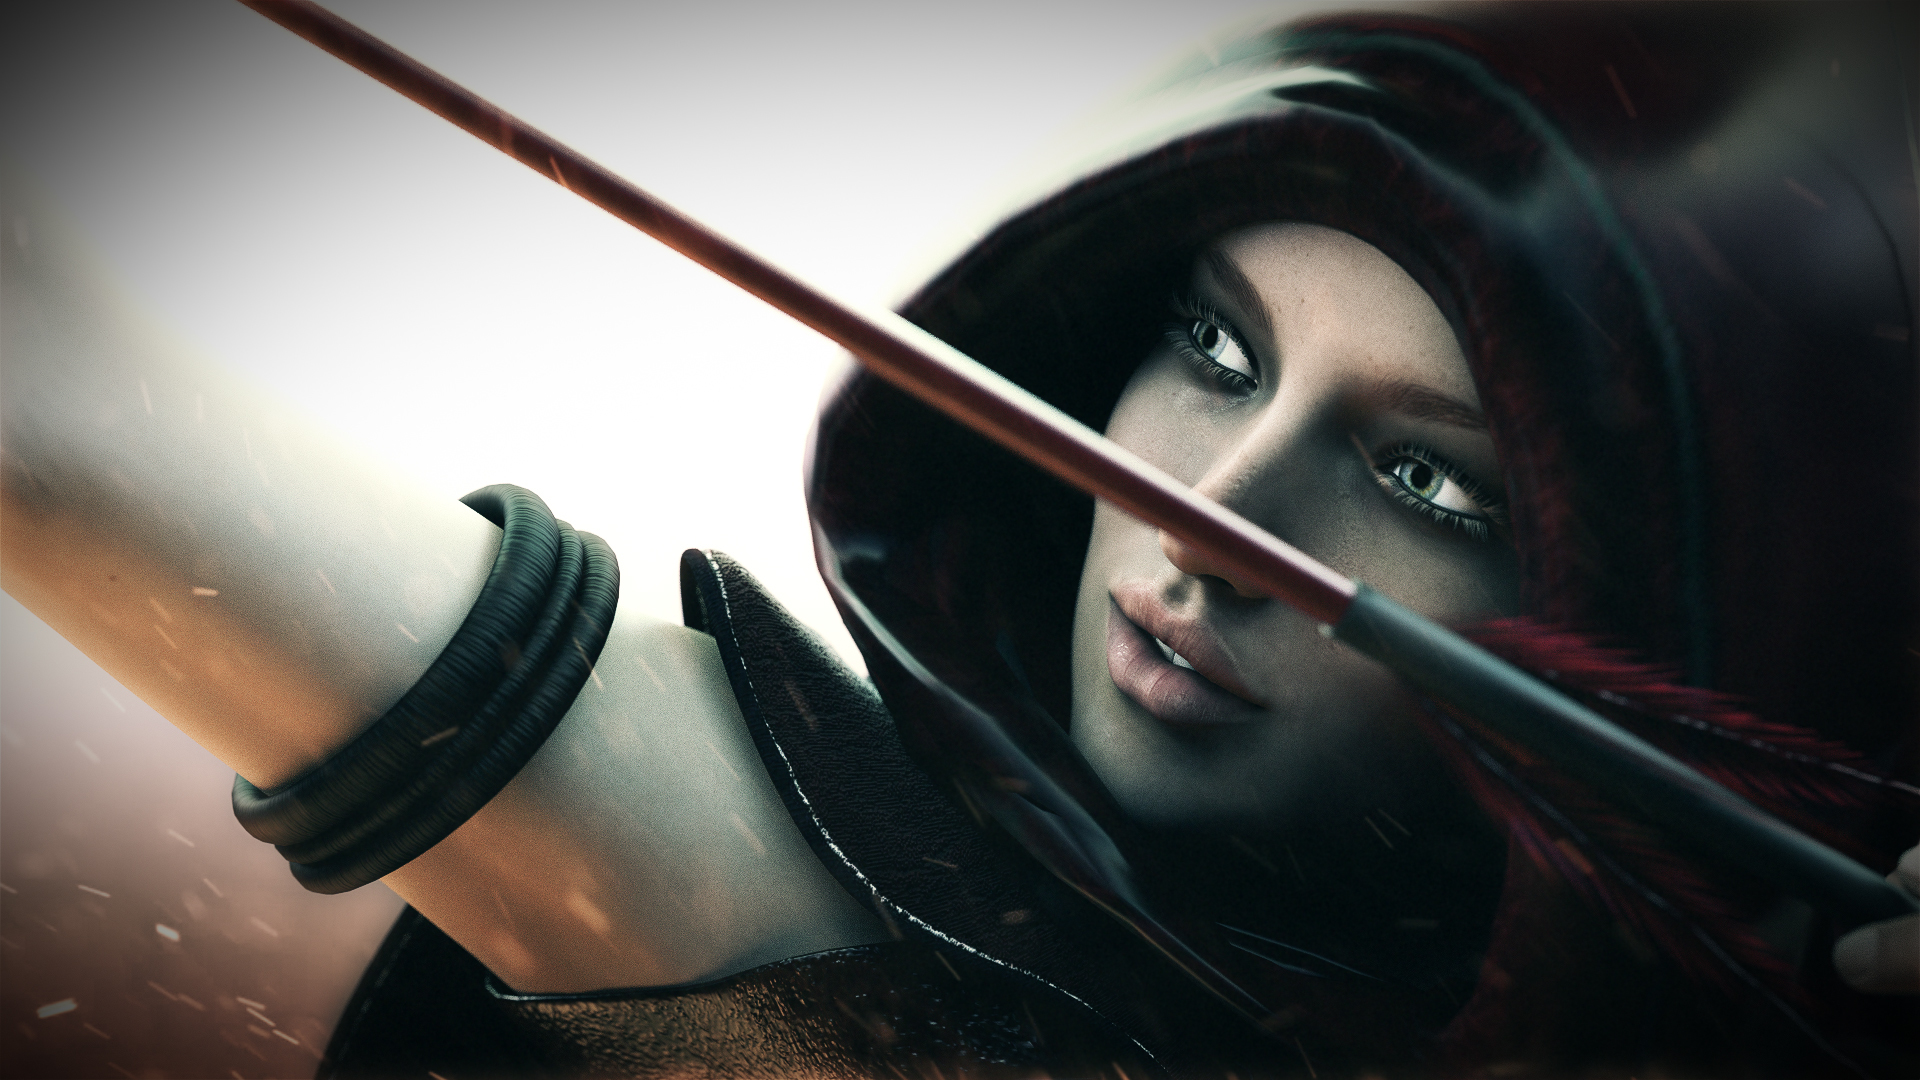 fantasy-archer-arrow-black-aiming-black-hat-1920x1080